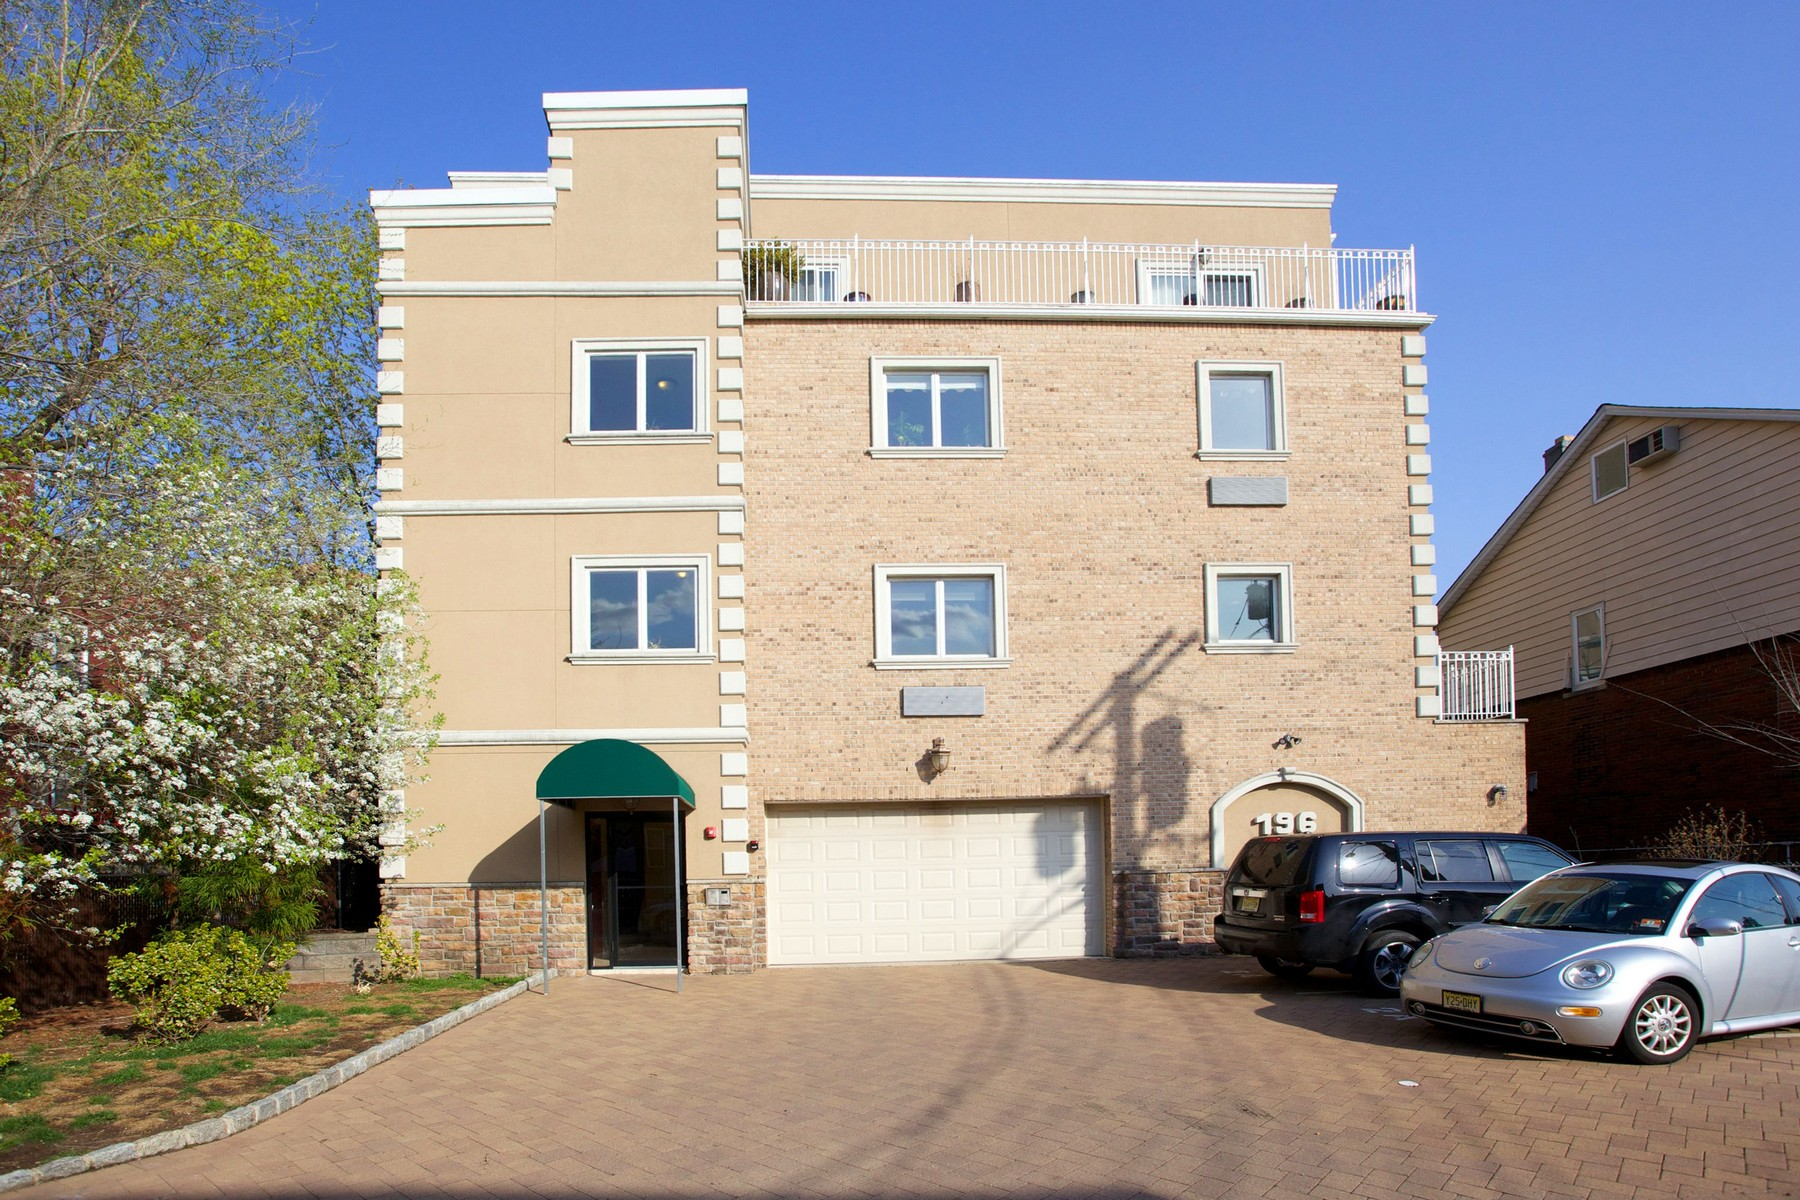 콘도미니엄 용 매매 에 Spacious apartment in pet friendly condo building 196 Cedar Street #2A Cliffside Park, 뉴저지 07010 미국